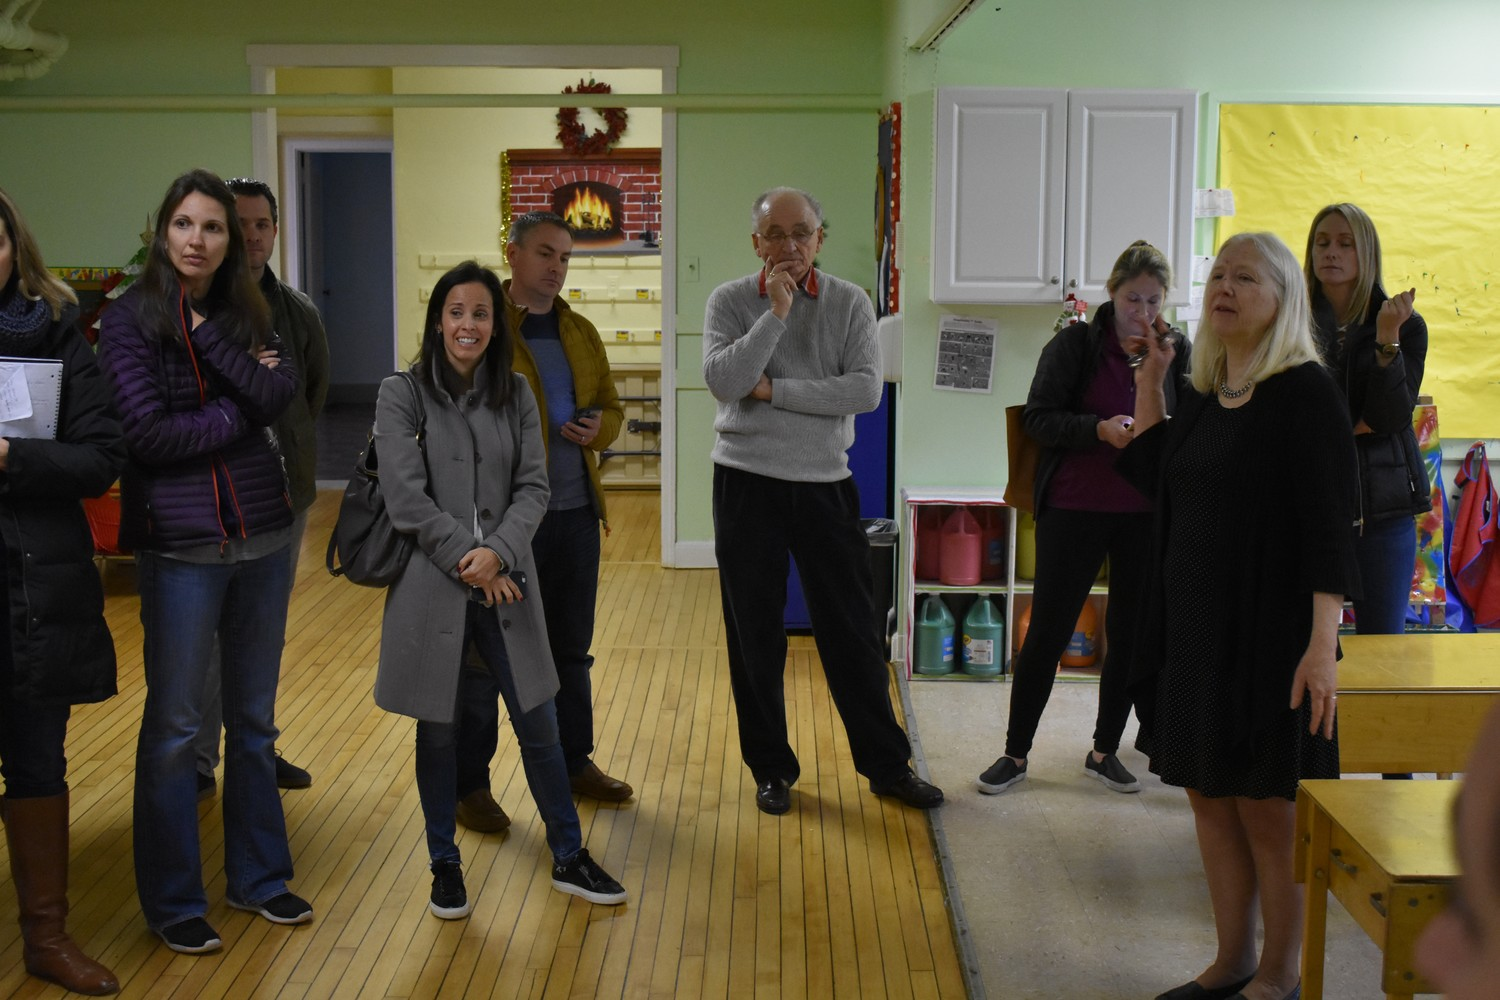 United Church Nursery School Reopens After Safety Inspections Herald Community Newspapers Liherald